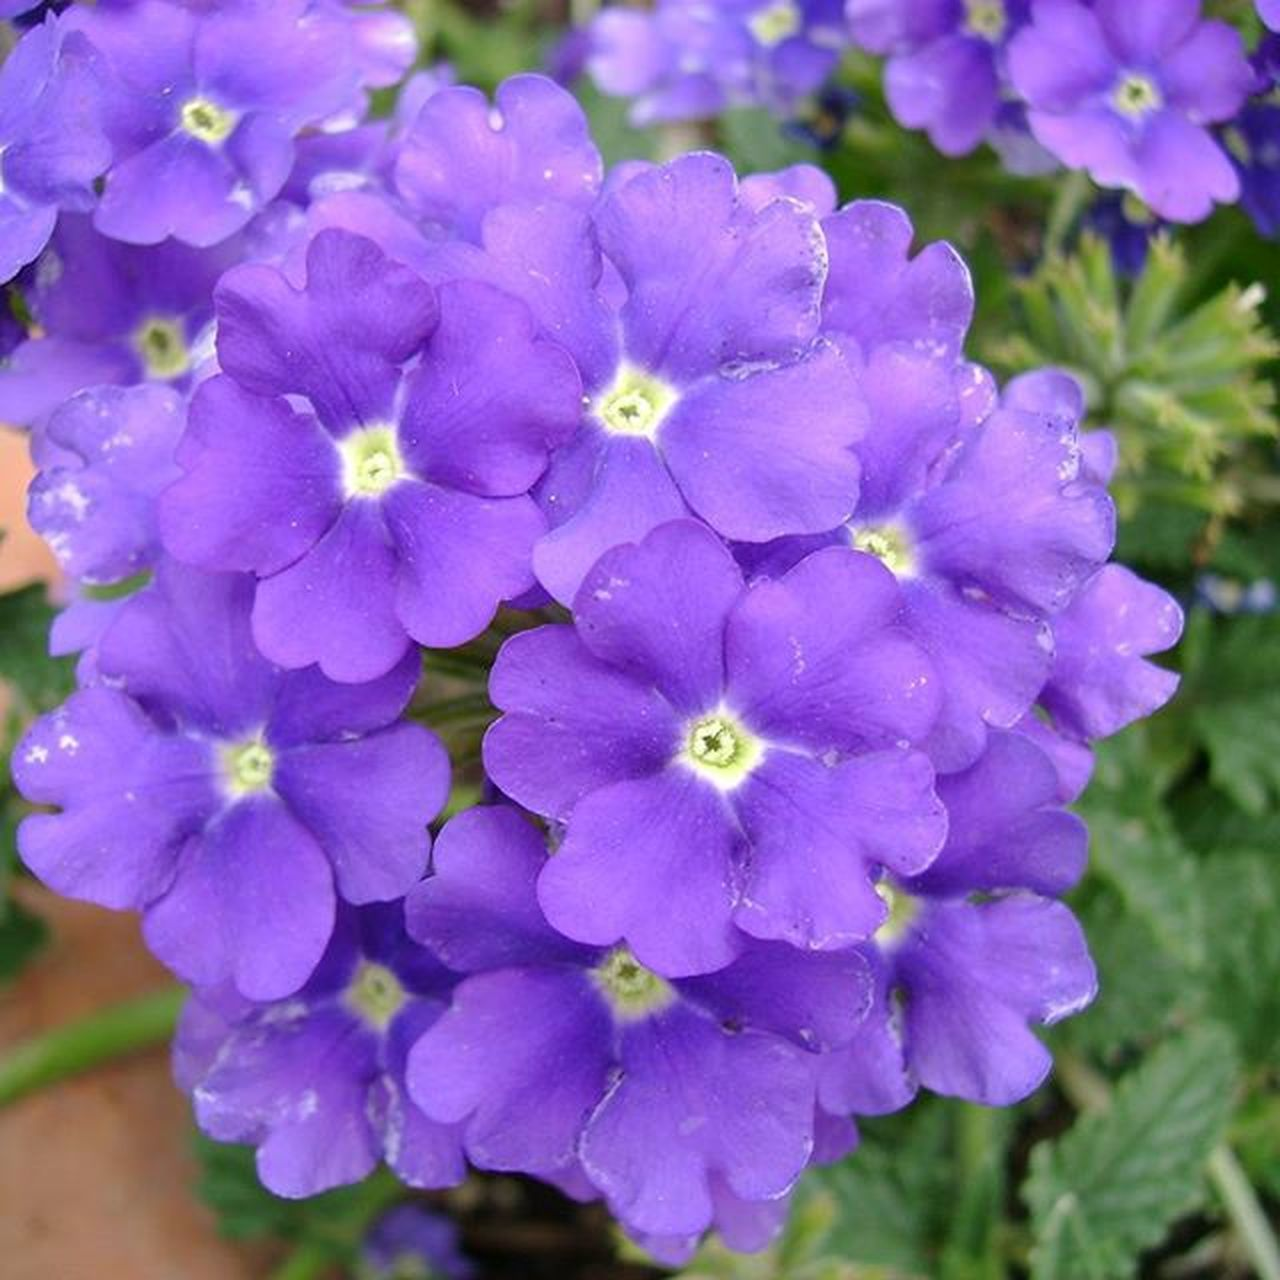 flower, growth, purple, nature, beauty in nature, petal, plant, outdoors, fragility, freshness, no people, blooming, flower head, day, close-up